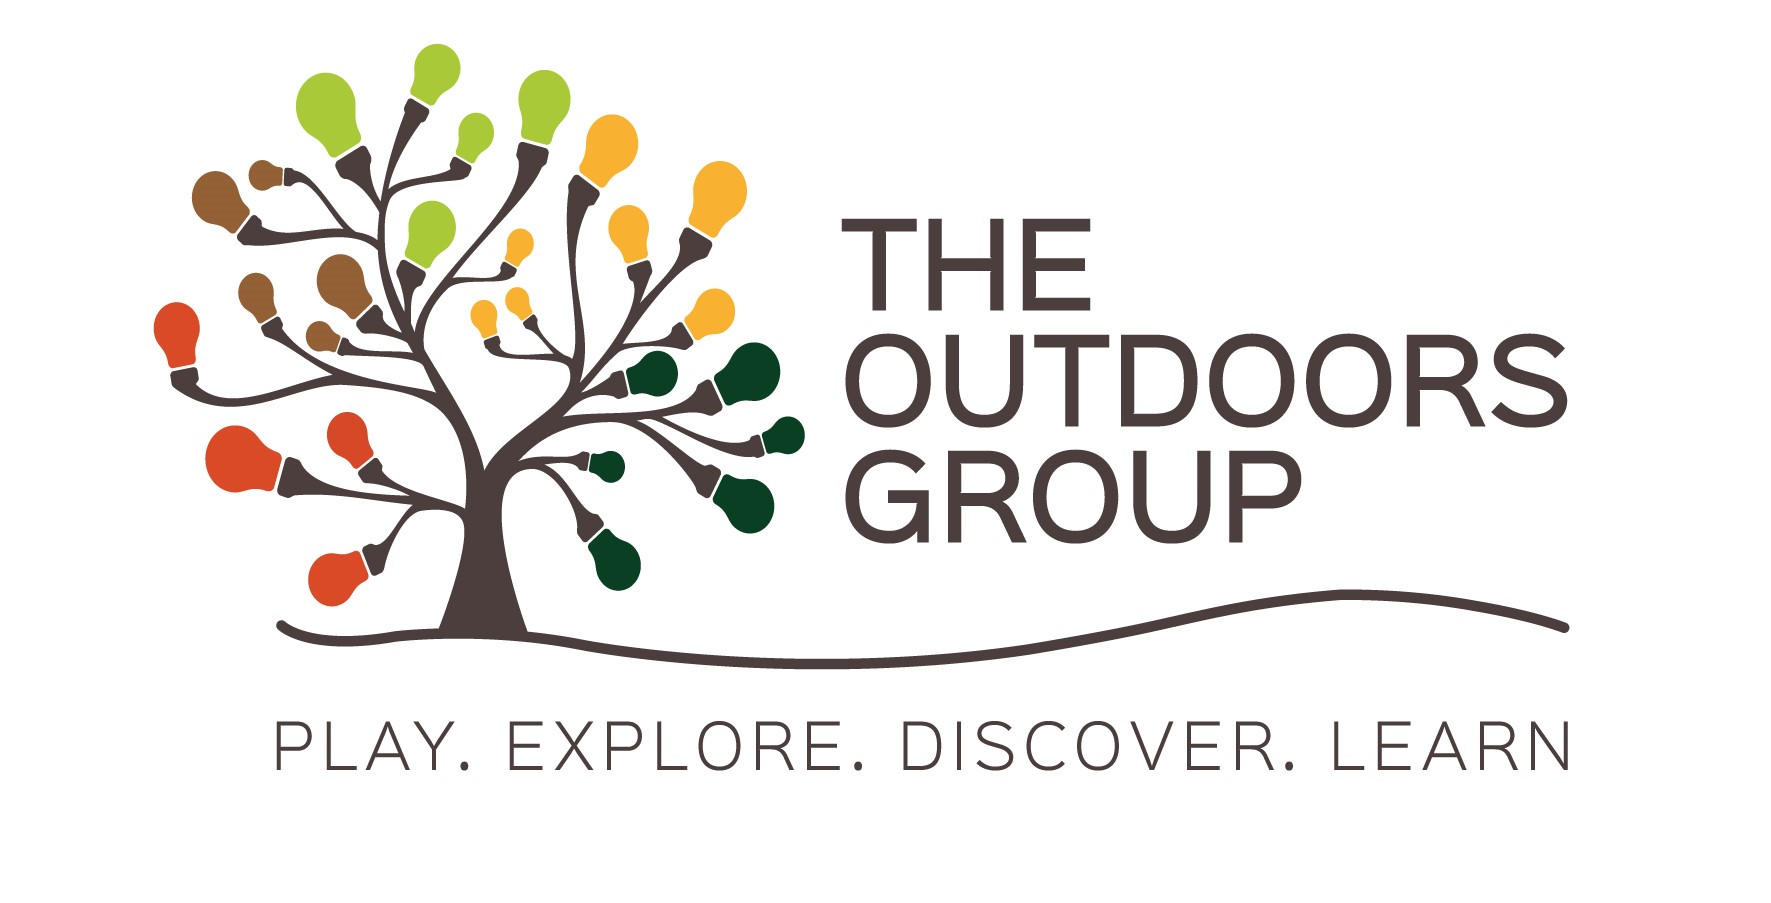 The Outdoors Group